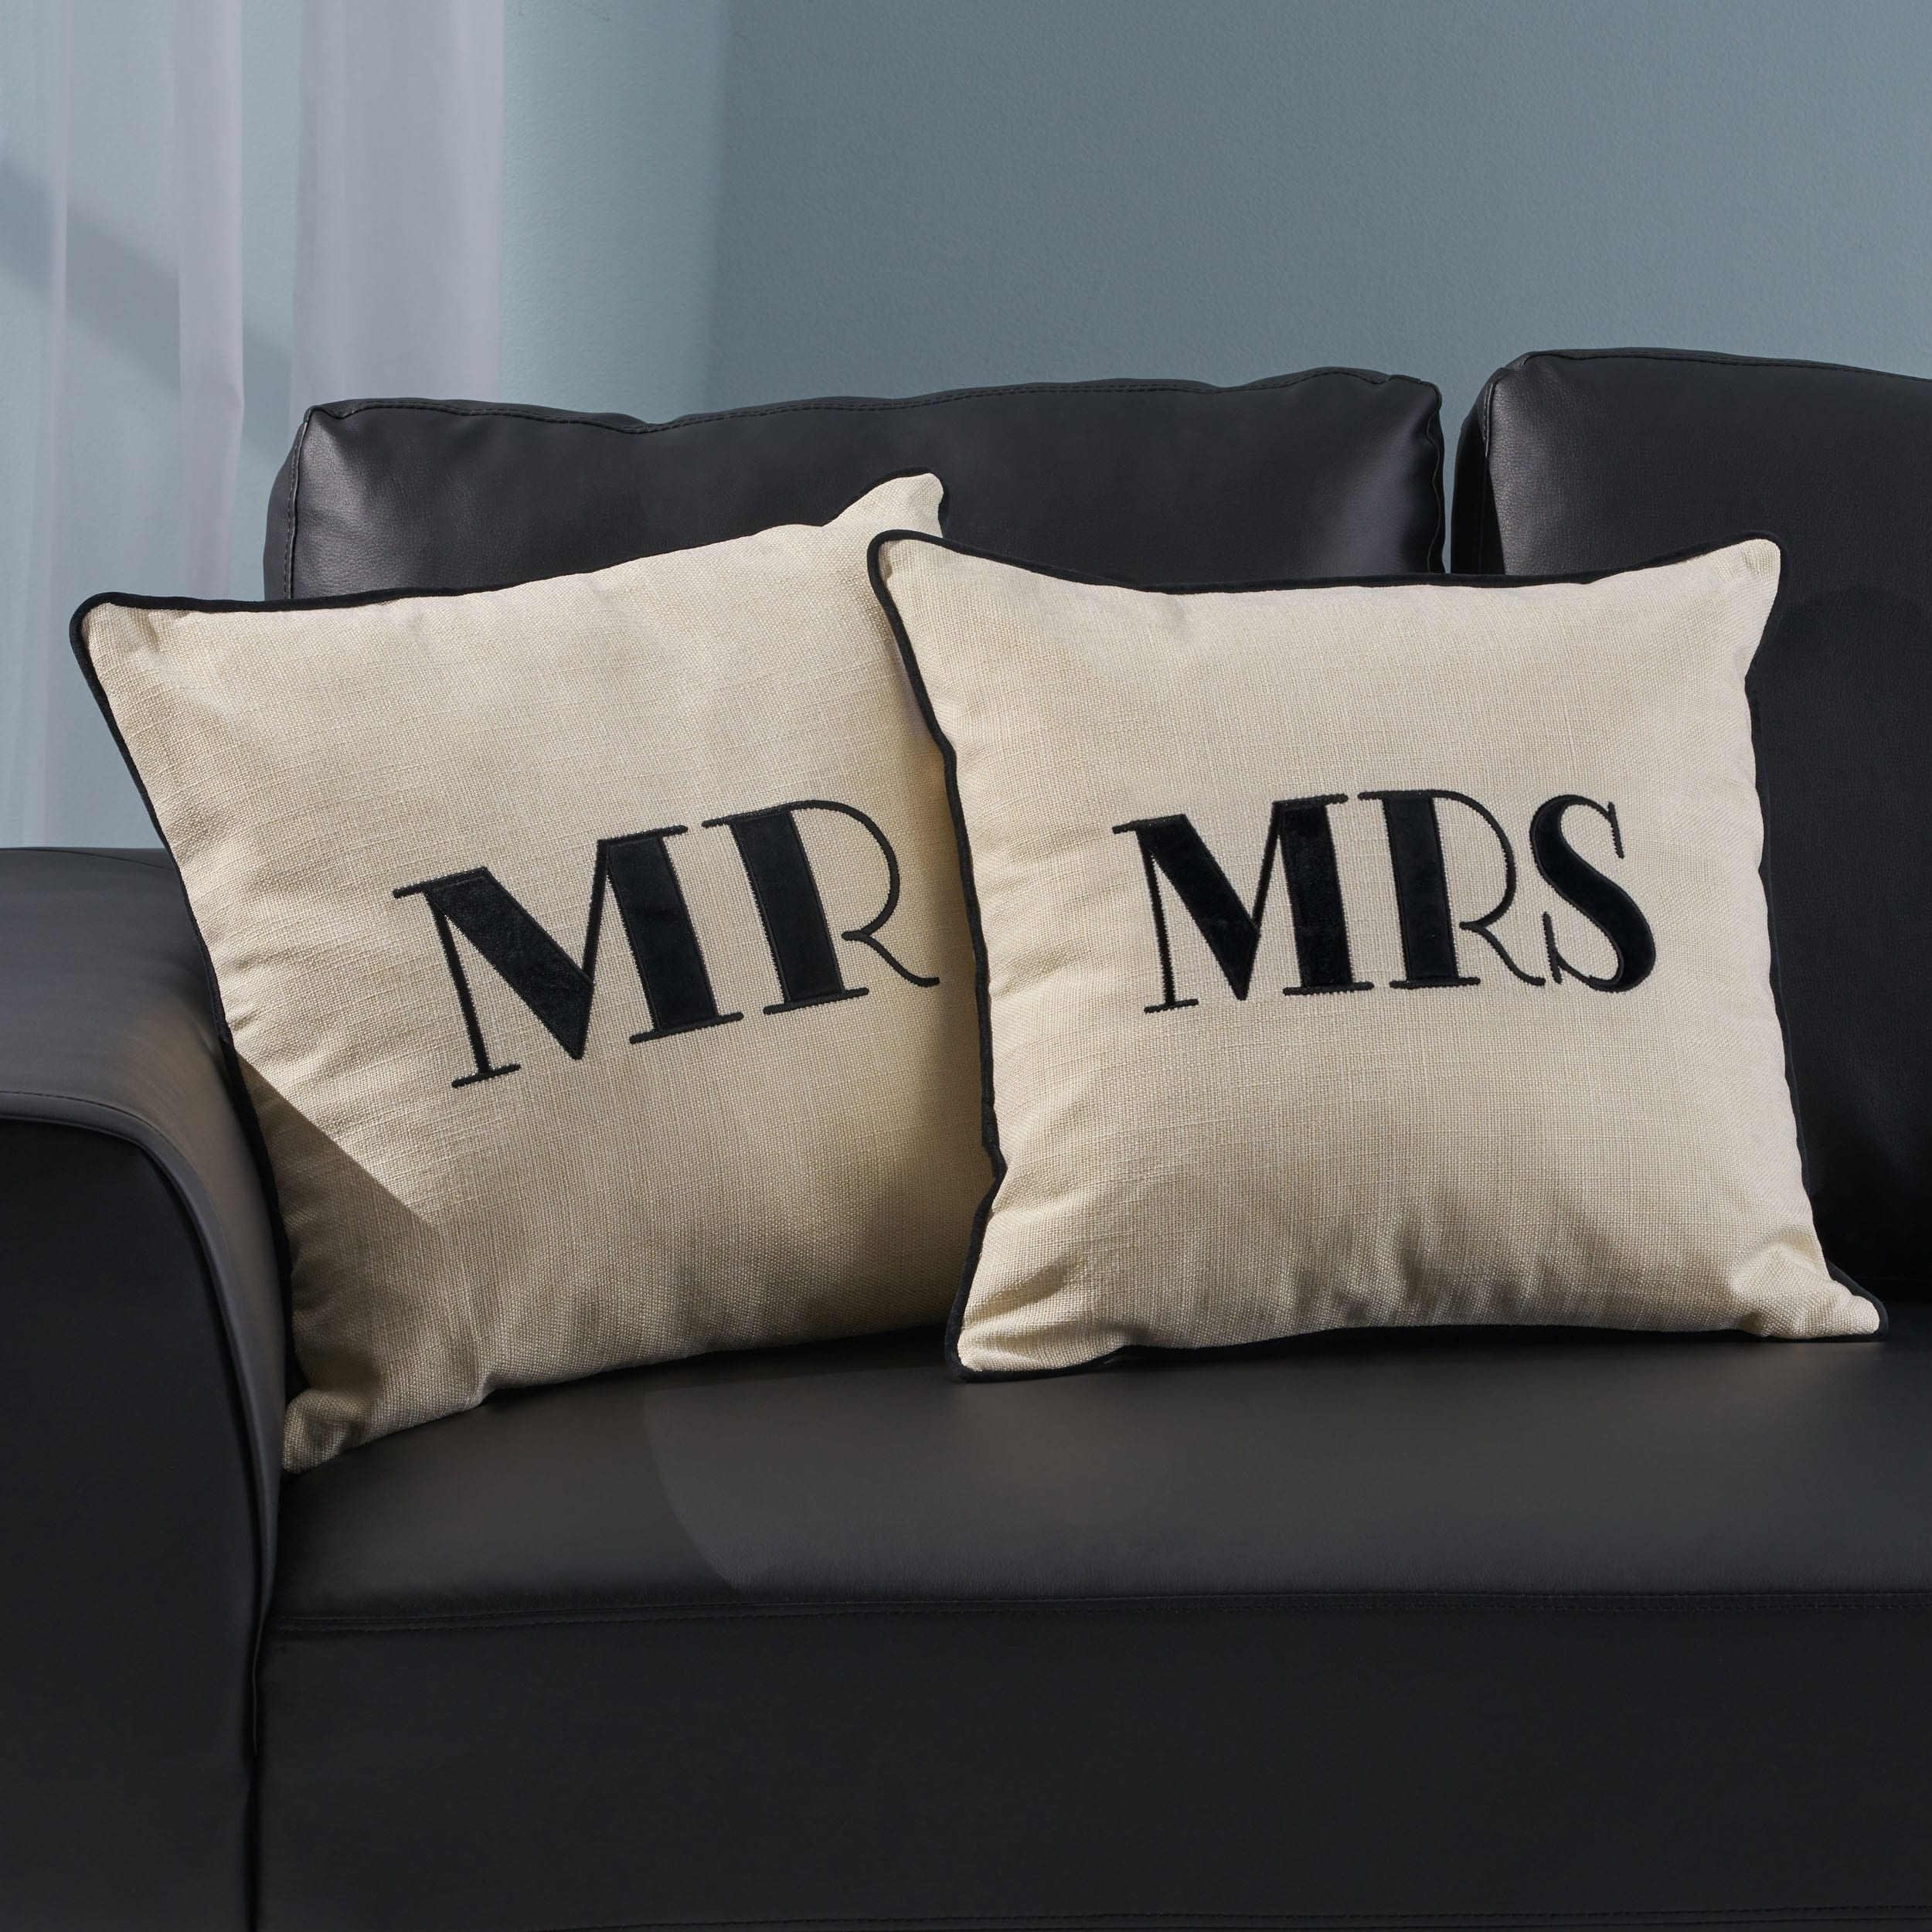 Alvarado Modern Fabric Mr And Mrs Pillow Covers Set Of 2 By Christopher Knight Home On Sale Overstock 30345507